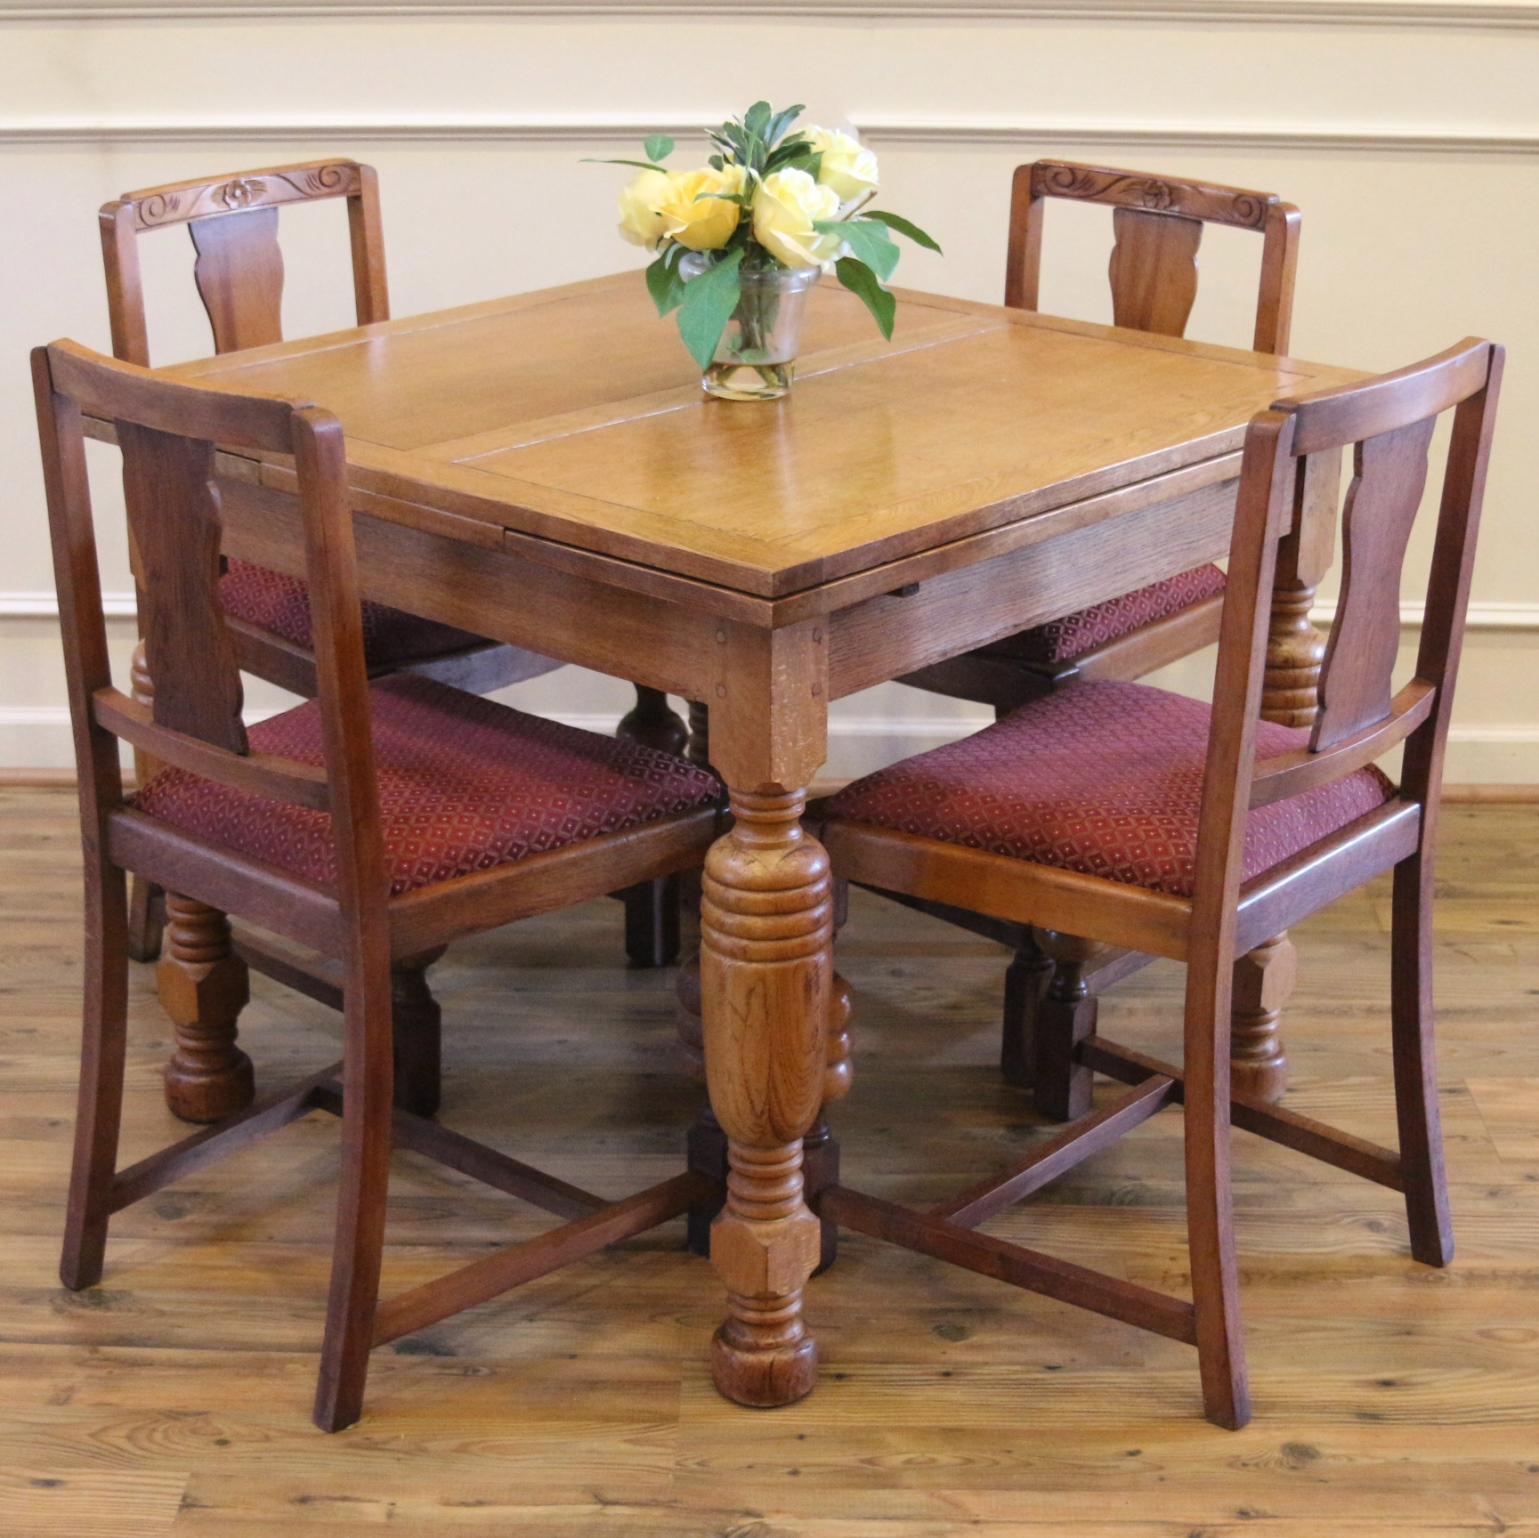 Table And Chairs: Antique English Oak Pub Table And 4 Chairs Dining Set. For